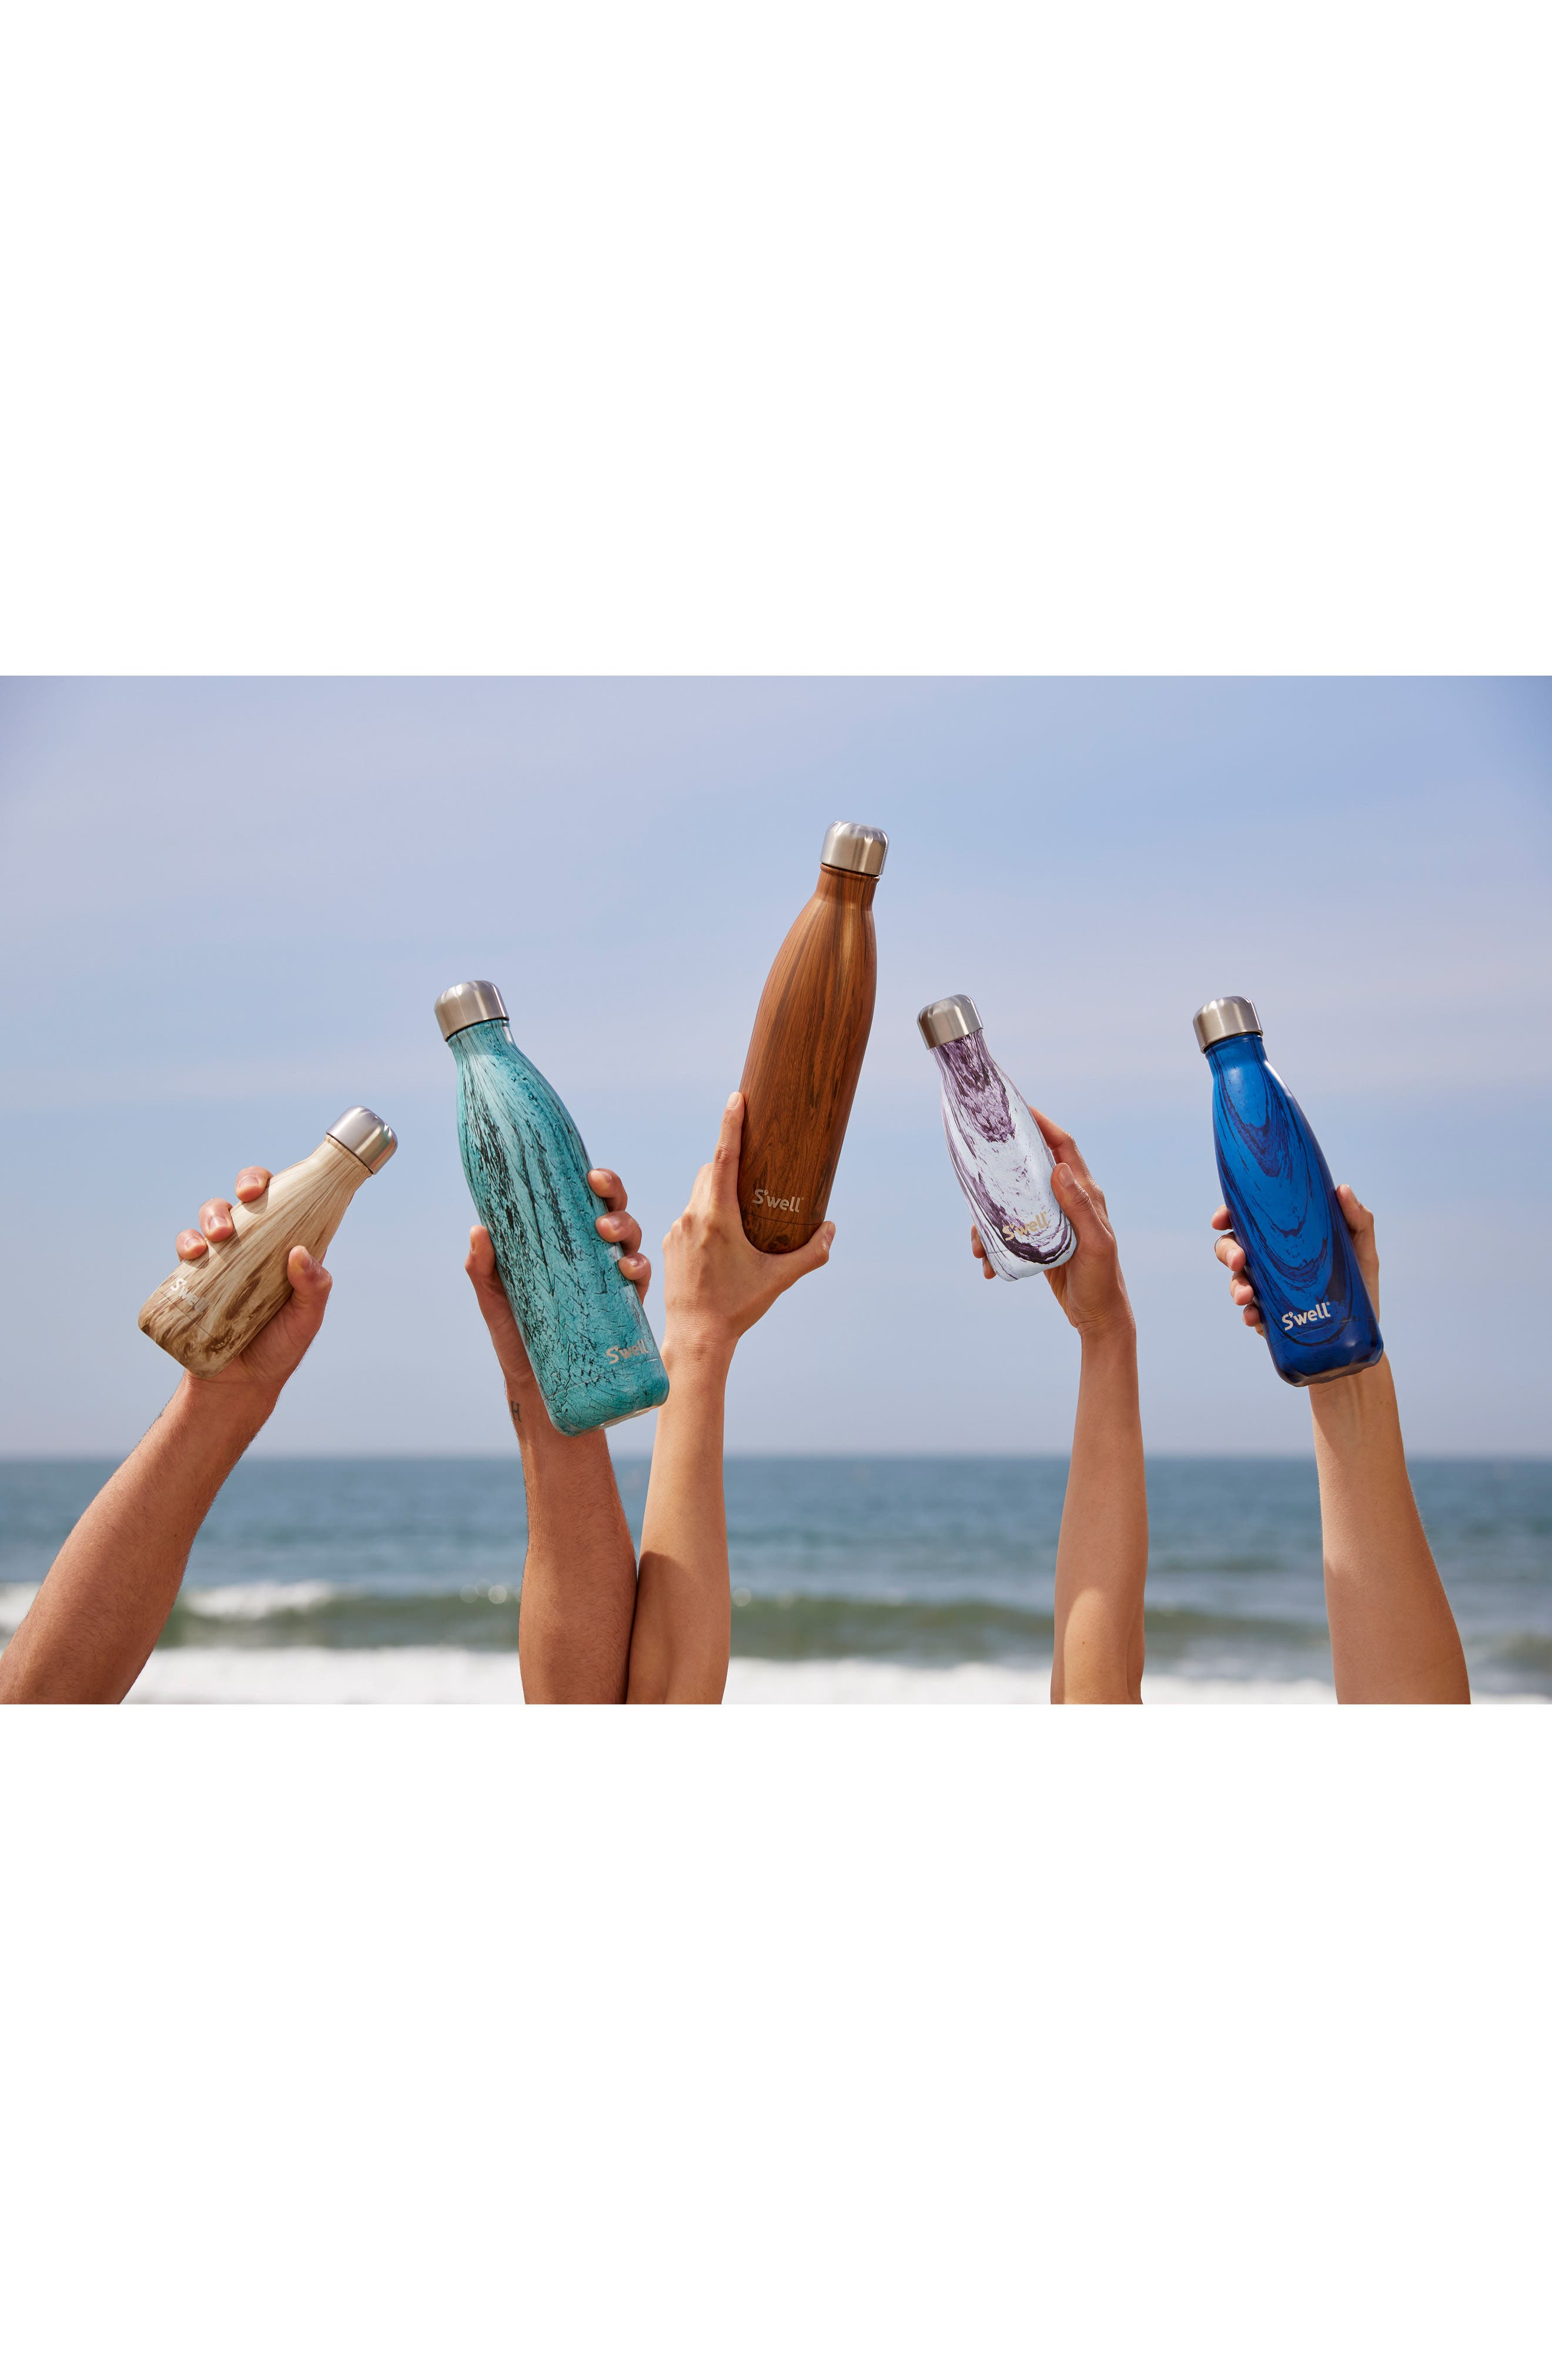 S'WELL, 'The Wood Collection - Lily Wood' Insulated Stainless Steel Water Bottle, Alternate thumbnail 6, color, 500